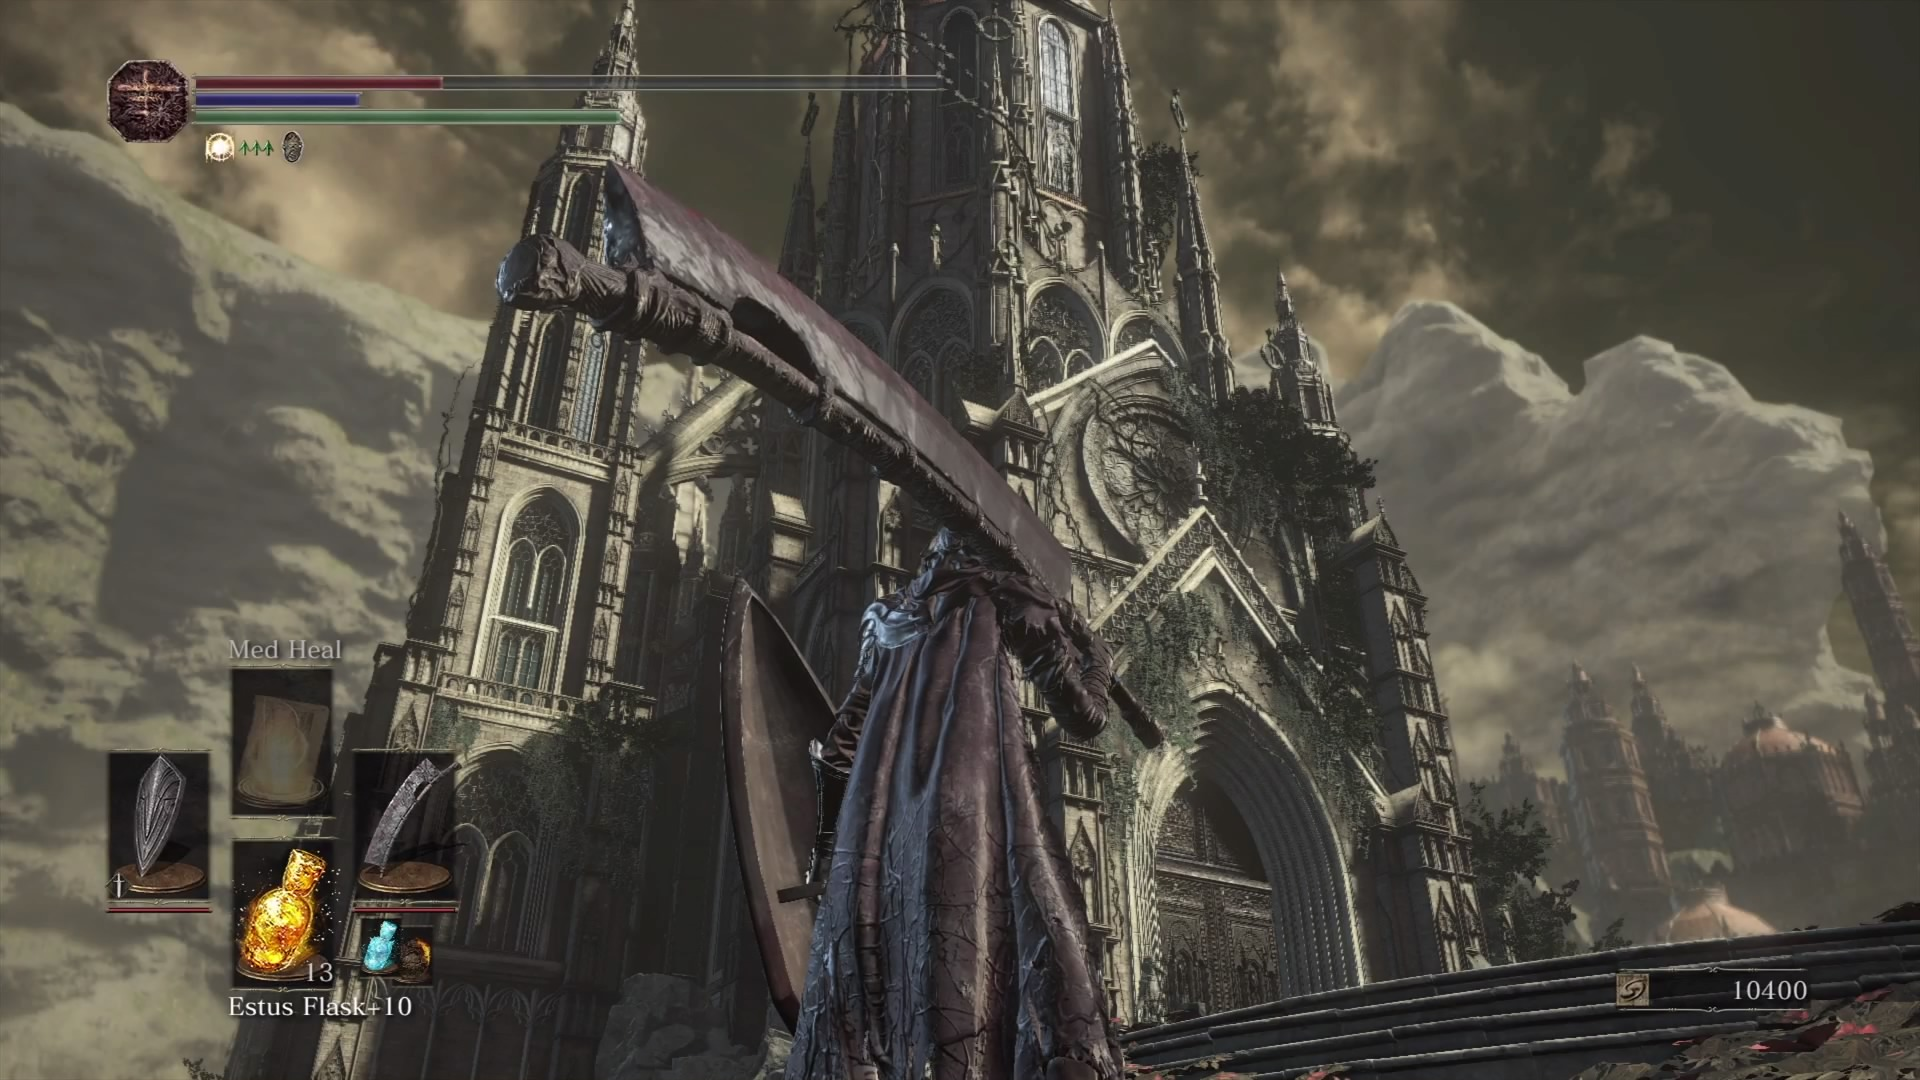 Dark Souls III: The Ringed City